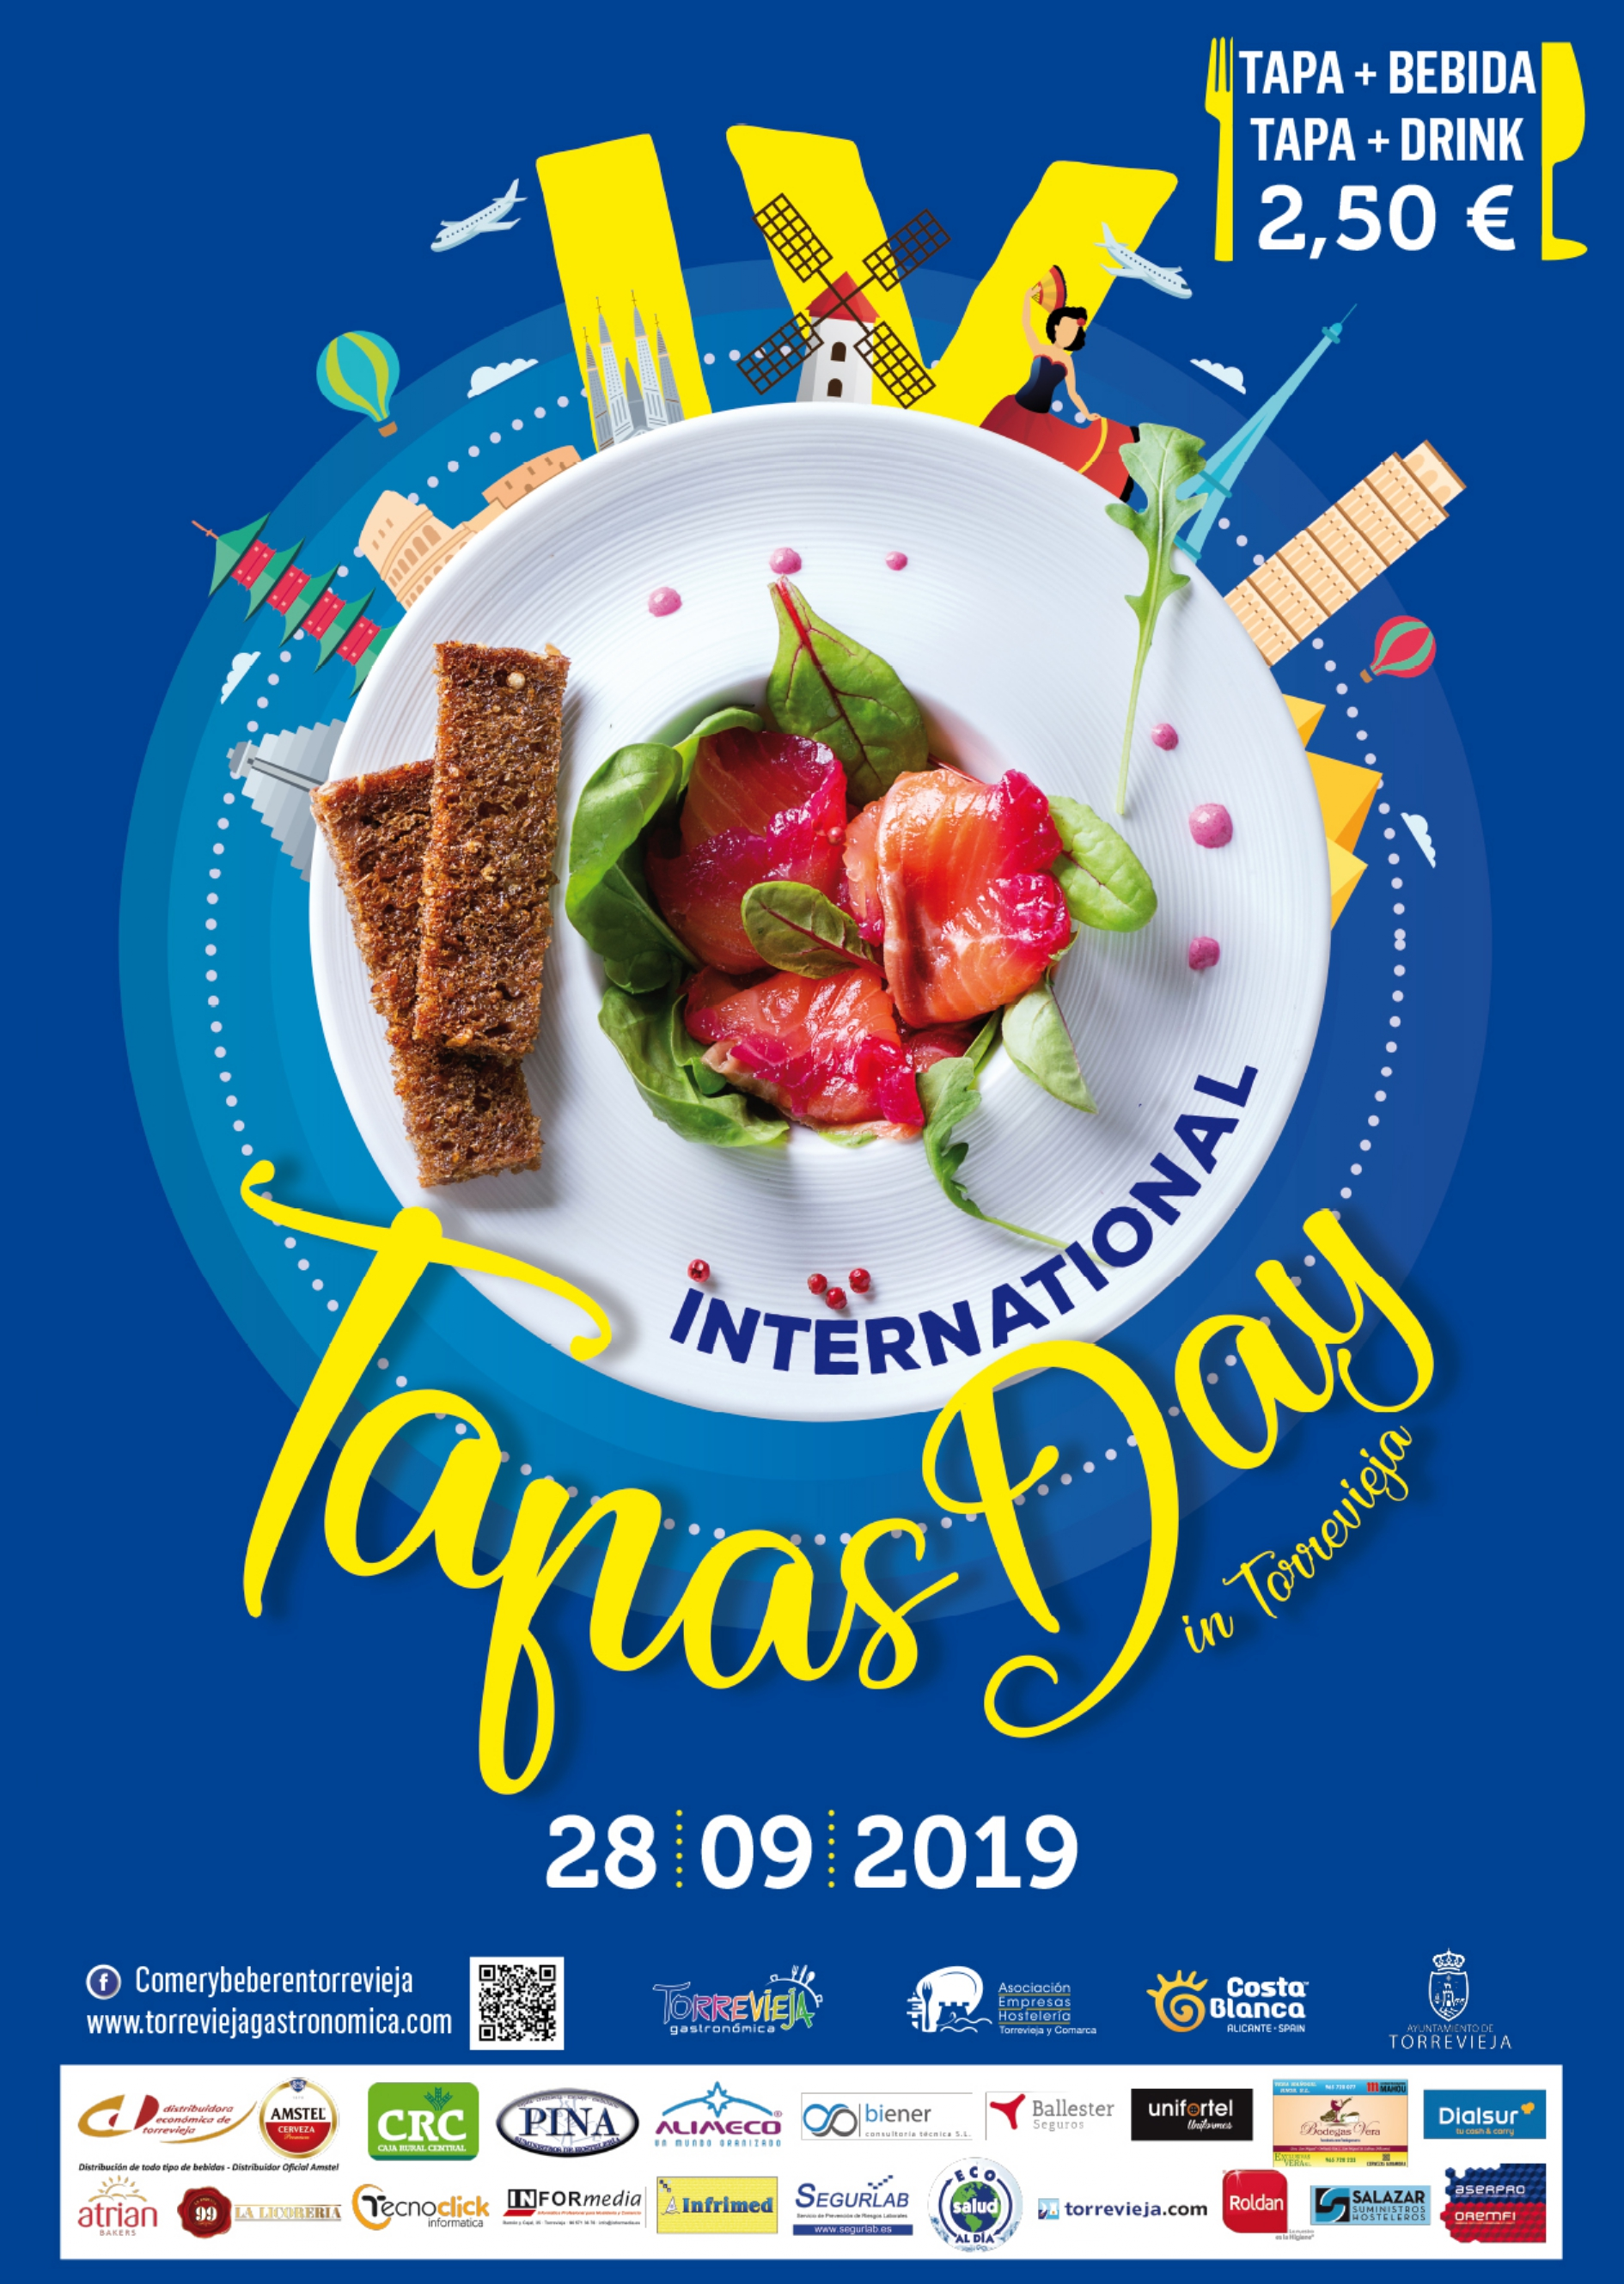 International Tapas Day 2019 Torrevieja